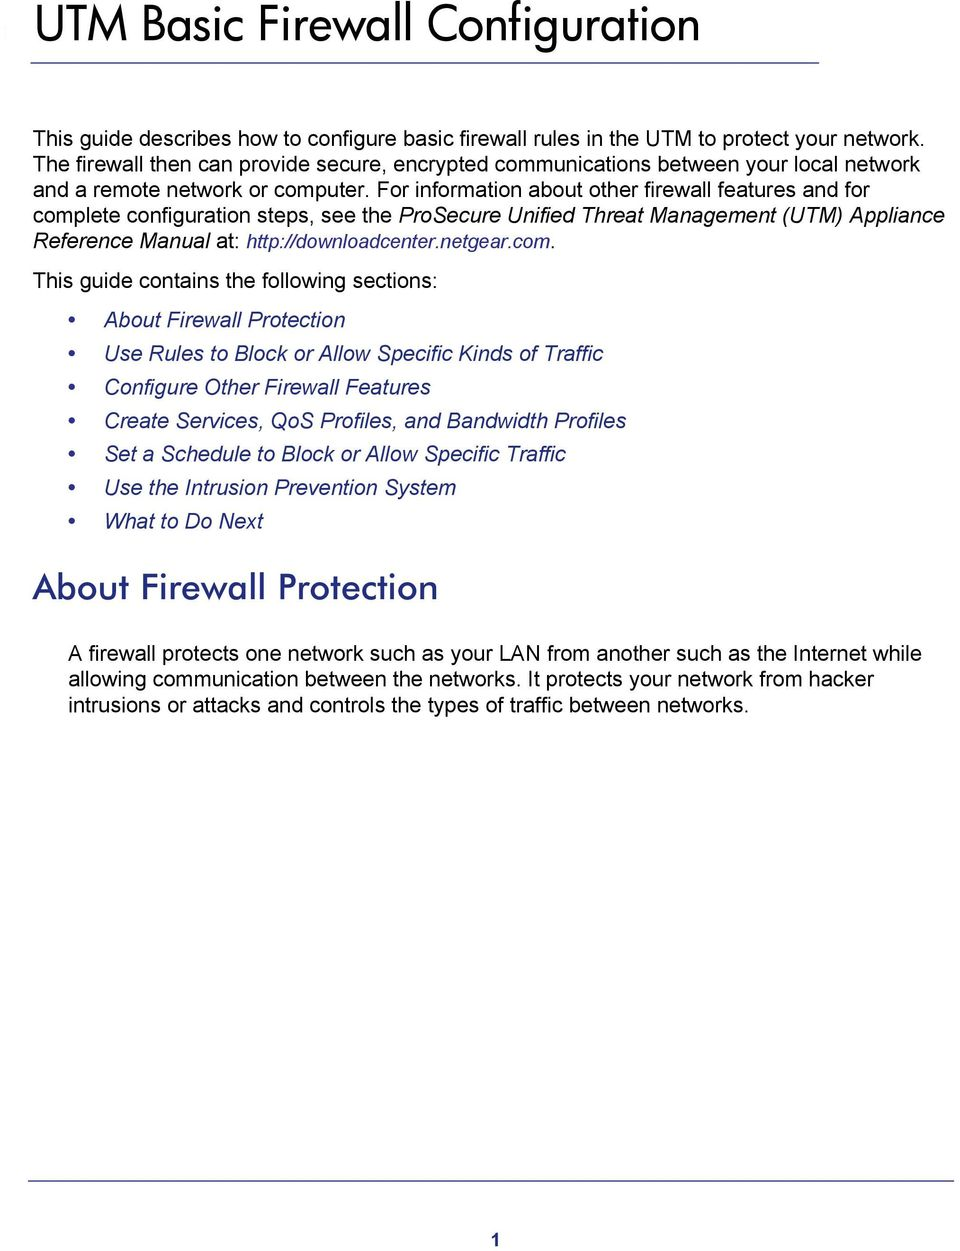 For information about other firewall features and for comp